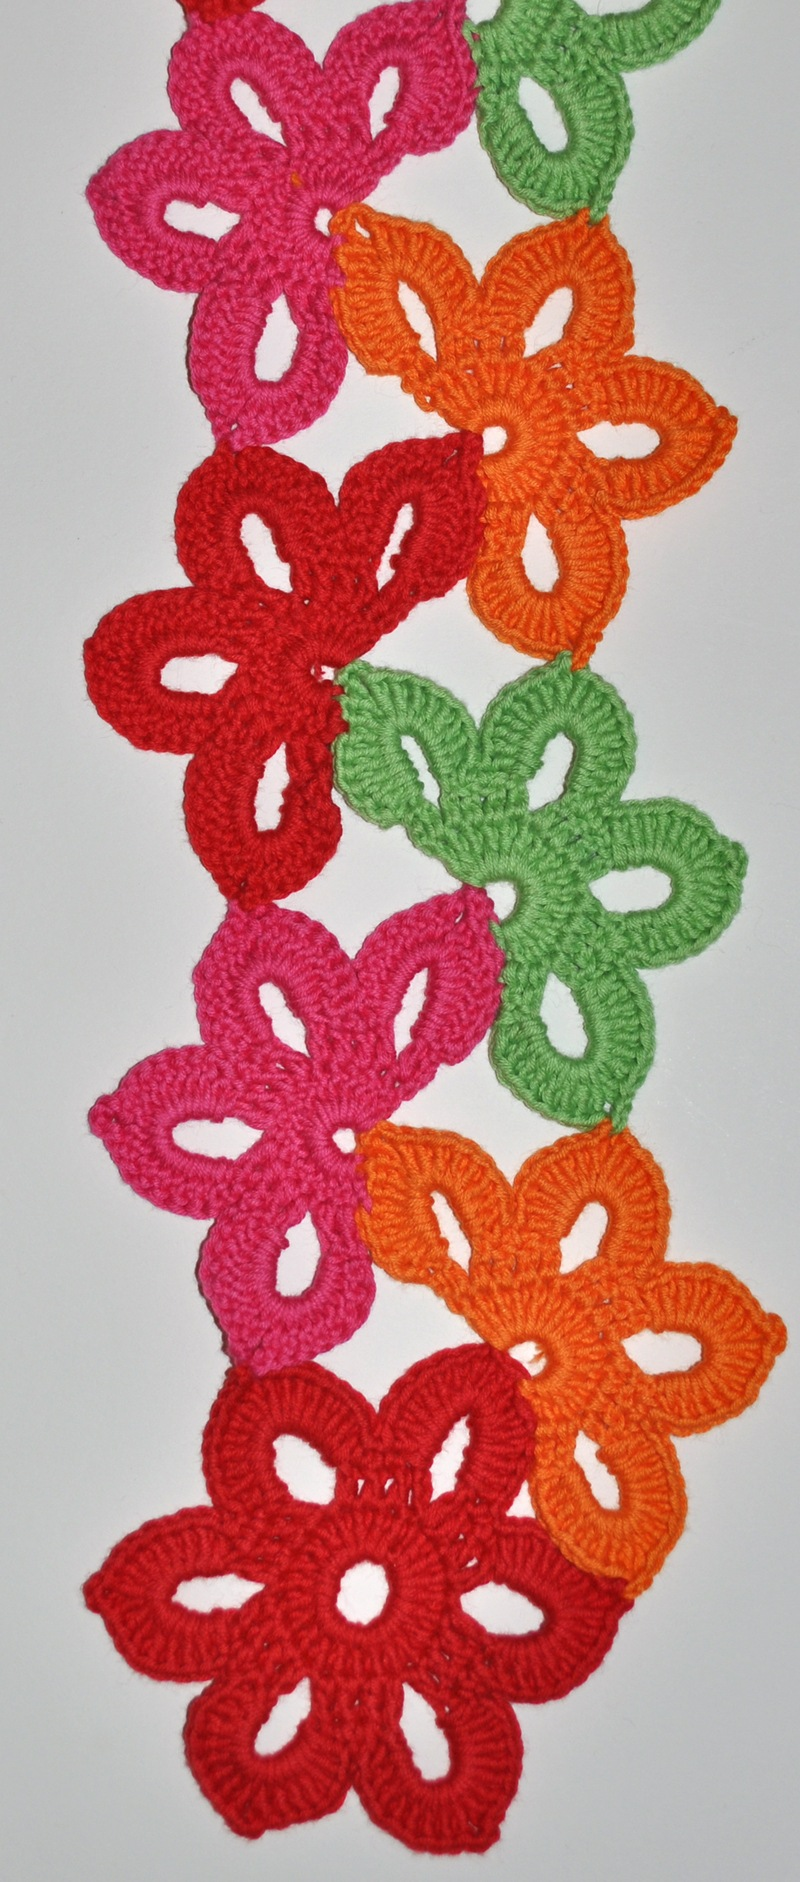 Floral Fiesta Crochet Scarf Pattern for Kids & Women  My Little  Crochet Scarves For Kids Patterns